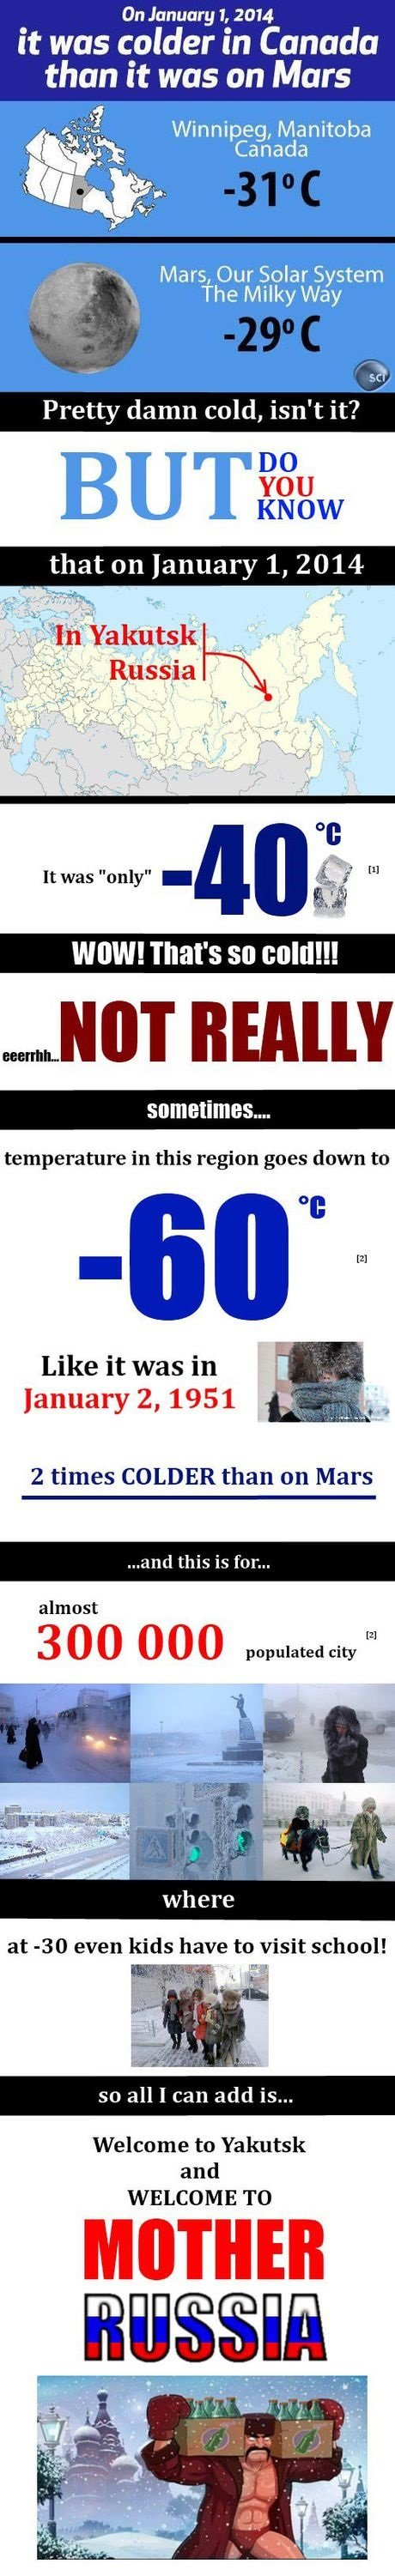 too cold. . On January I, .2014 it colder in Canada than it was ' Mars MI 'ttl I, Mars, Our Solar System lillie Pretty damn cold, isn' t it? iil, 1, 2014 an an